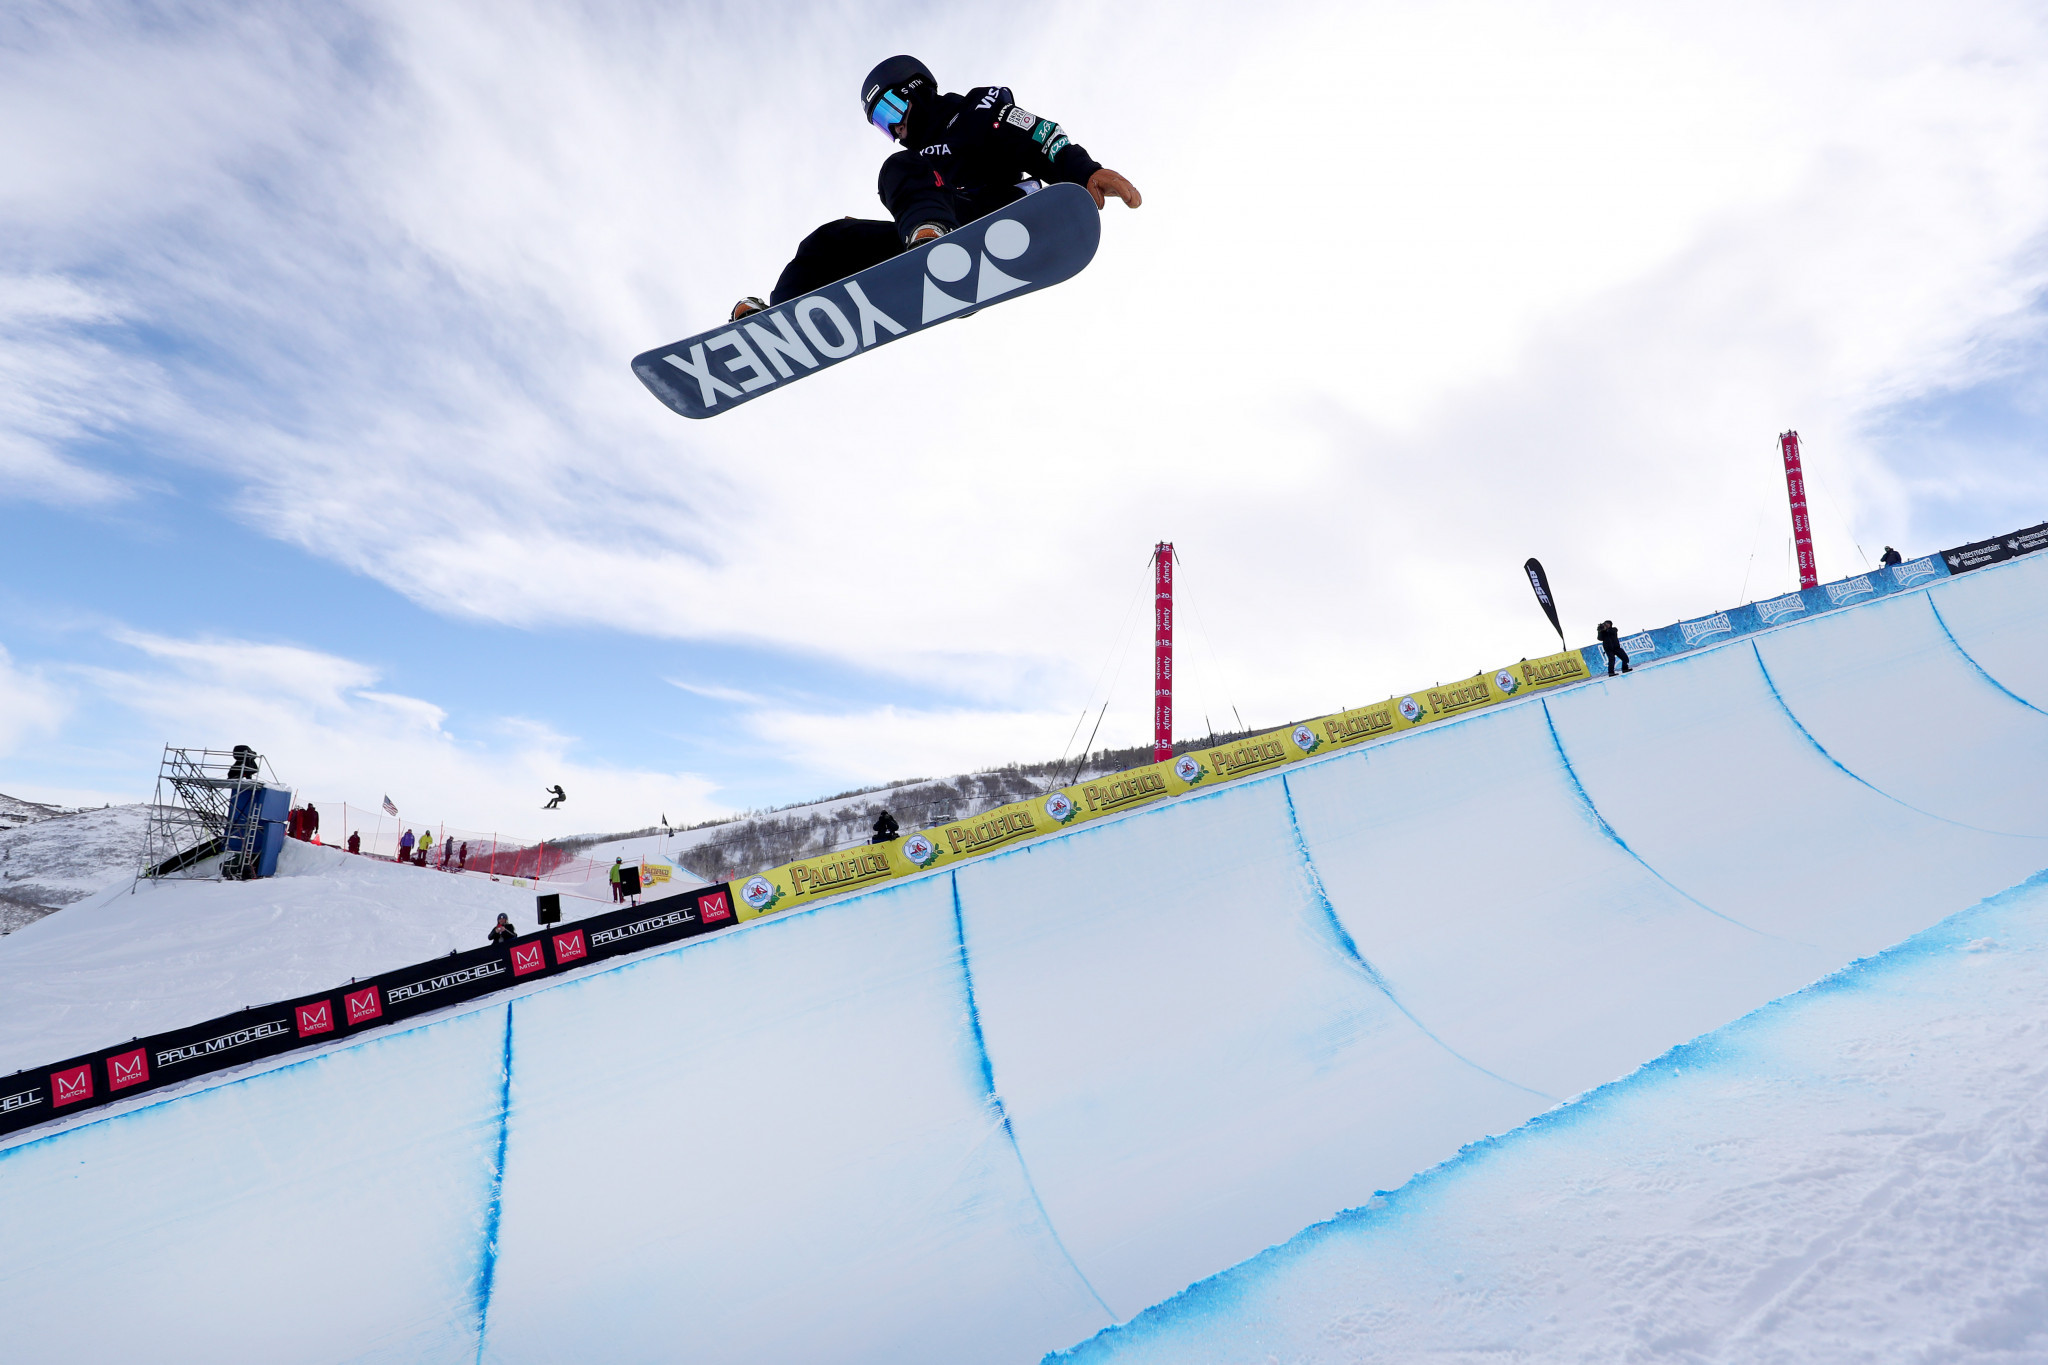 Totsuka backs up qualification performance by clinching halfpipe win at FIS Snowboard World Cup in Calgary